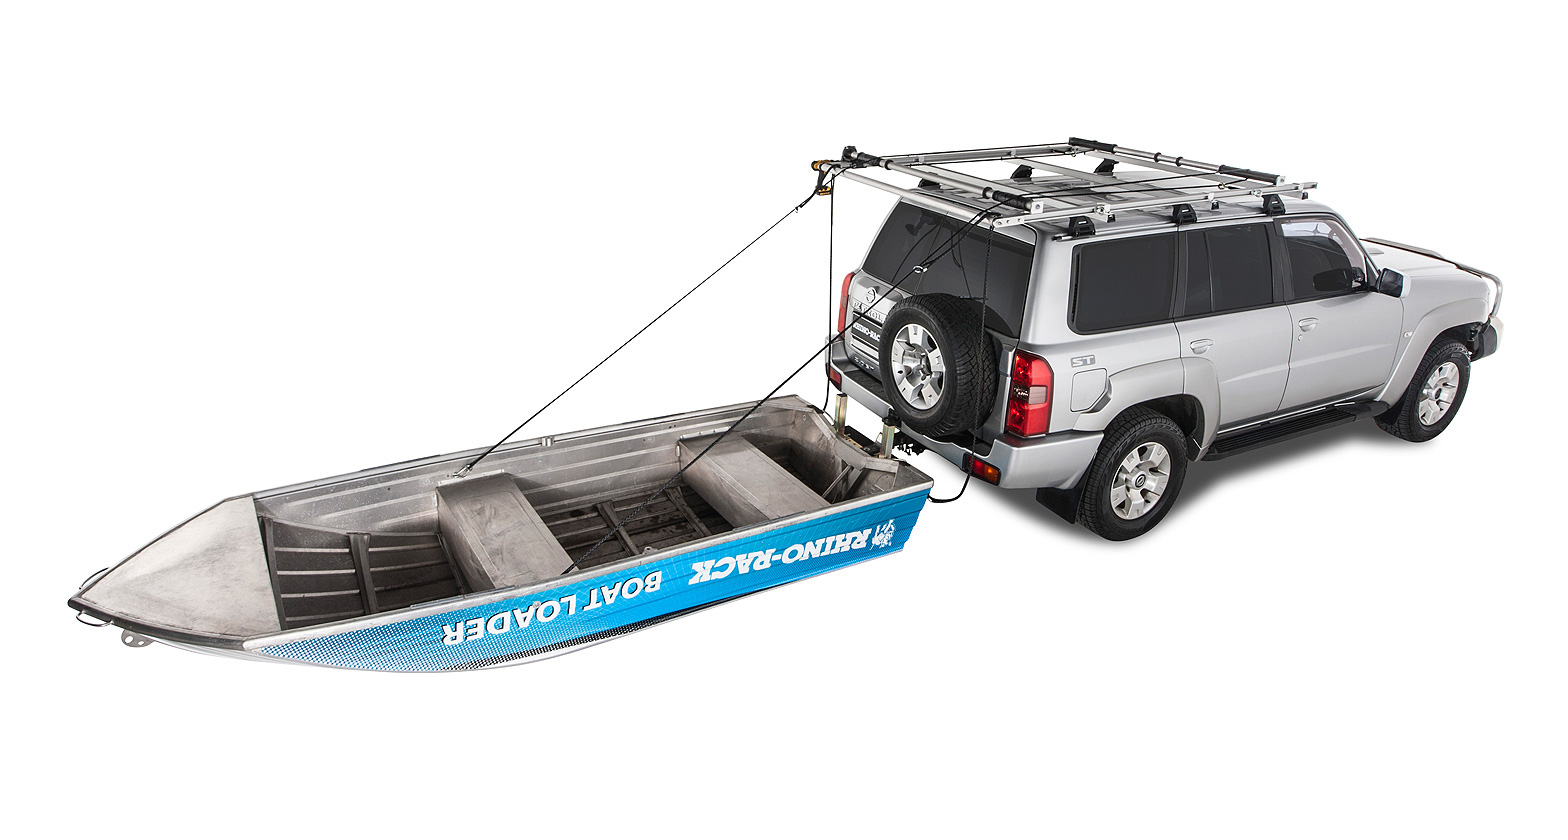 Toyota Prado Boat Loader Roof Rack Rear Boat Loader Rblw